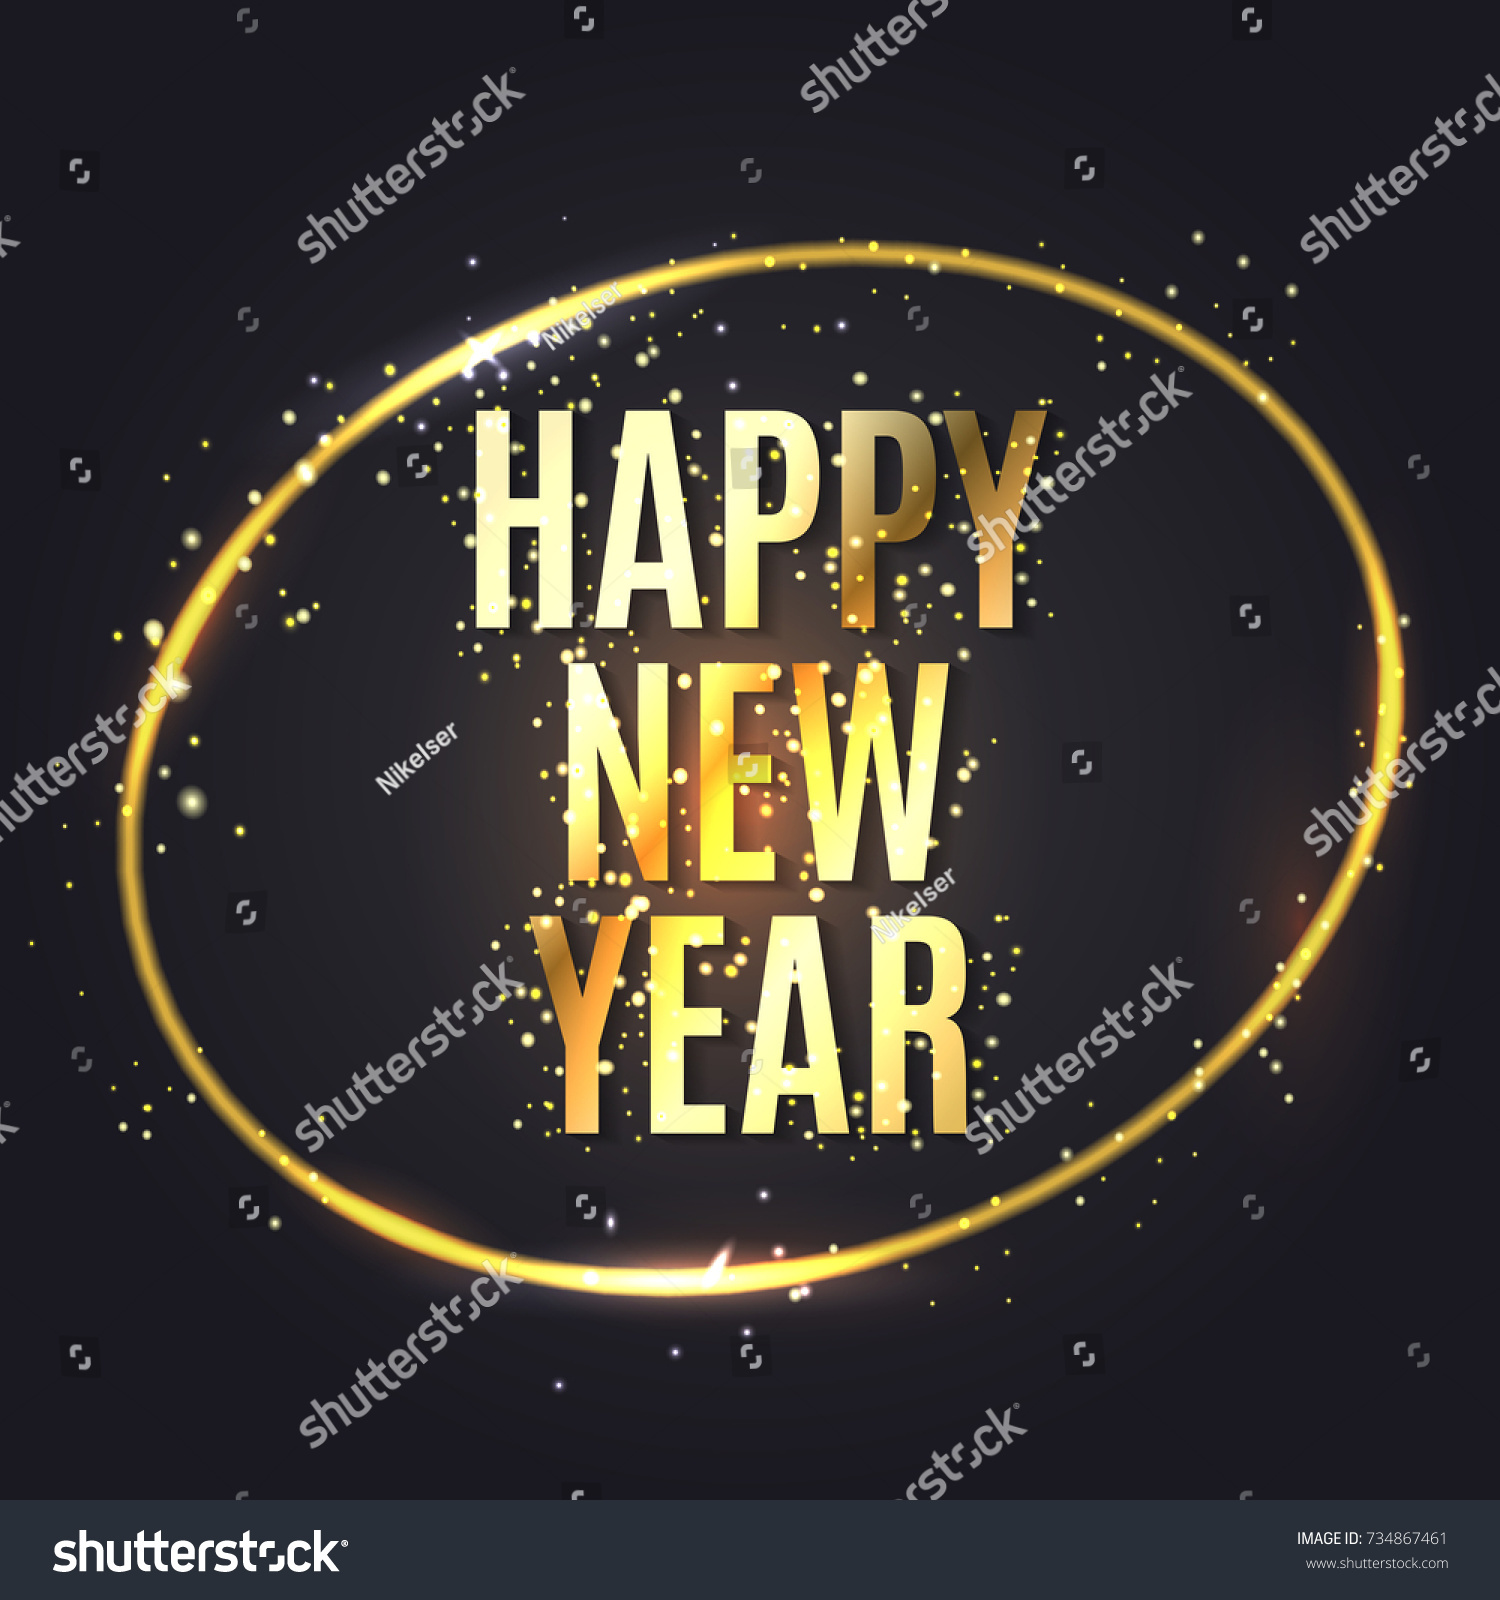 Happy New Year Wishes Greeting Card Stock Vector (Royalty